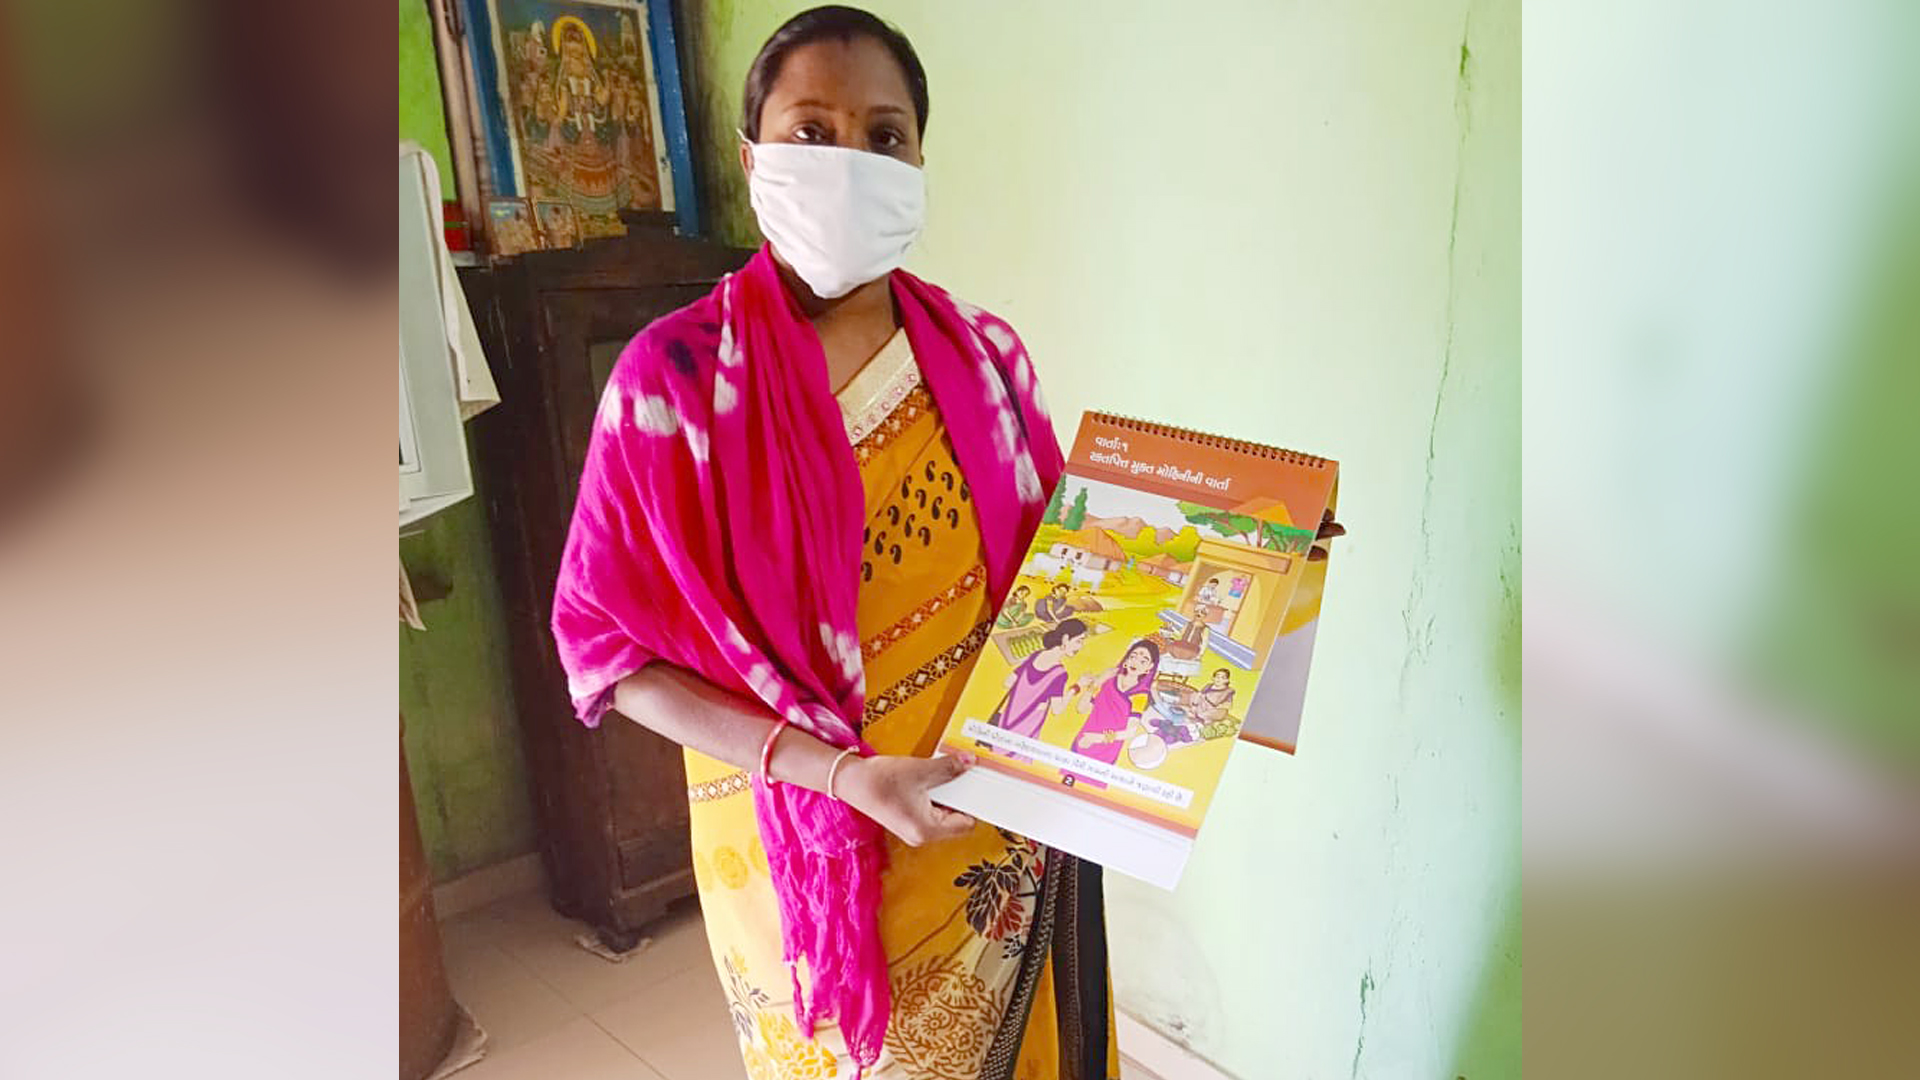 Picture This: Flip Charts Help In Fight Against Leprosy